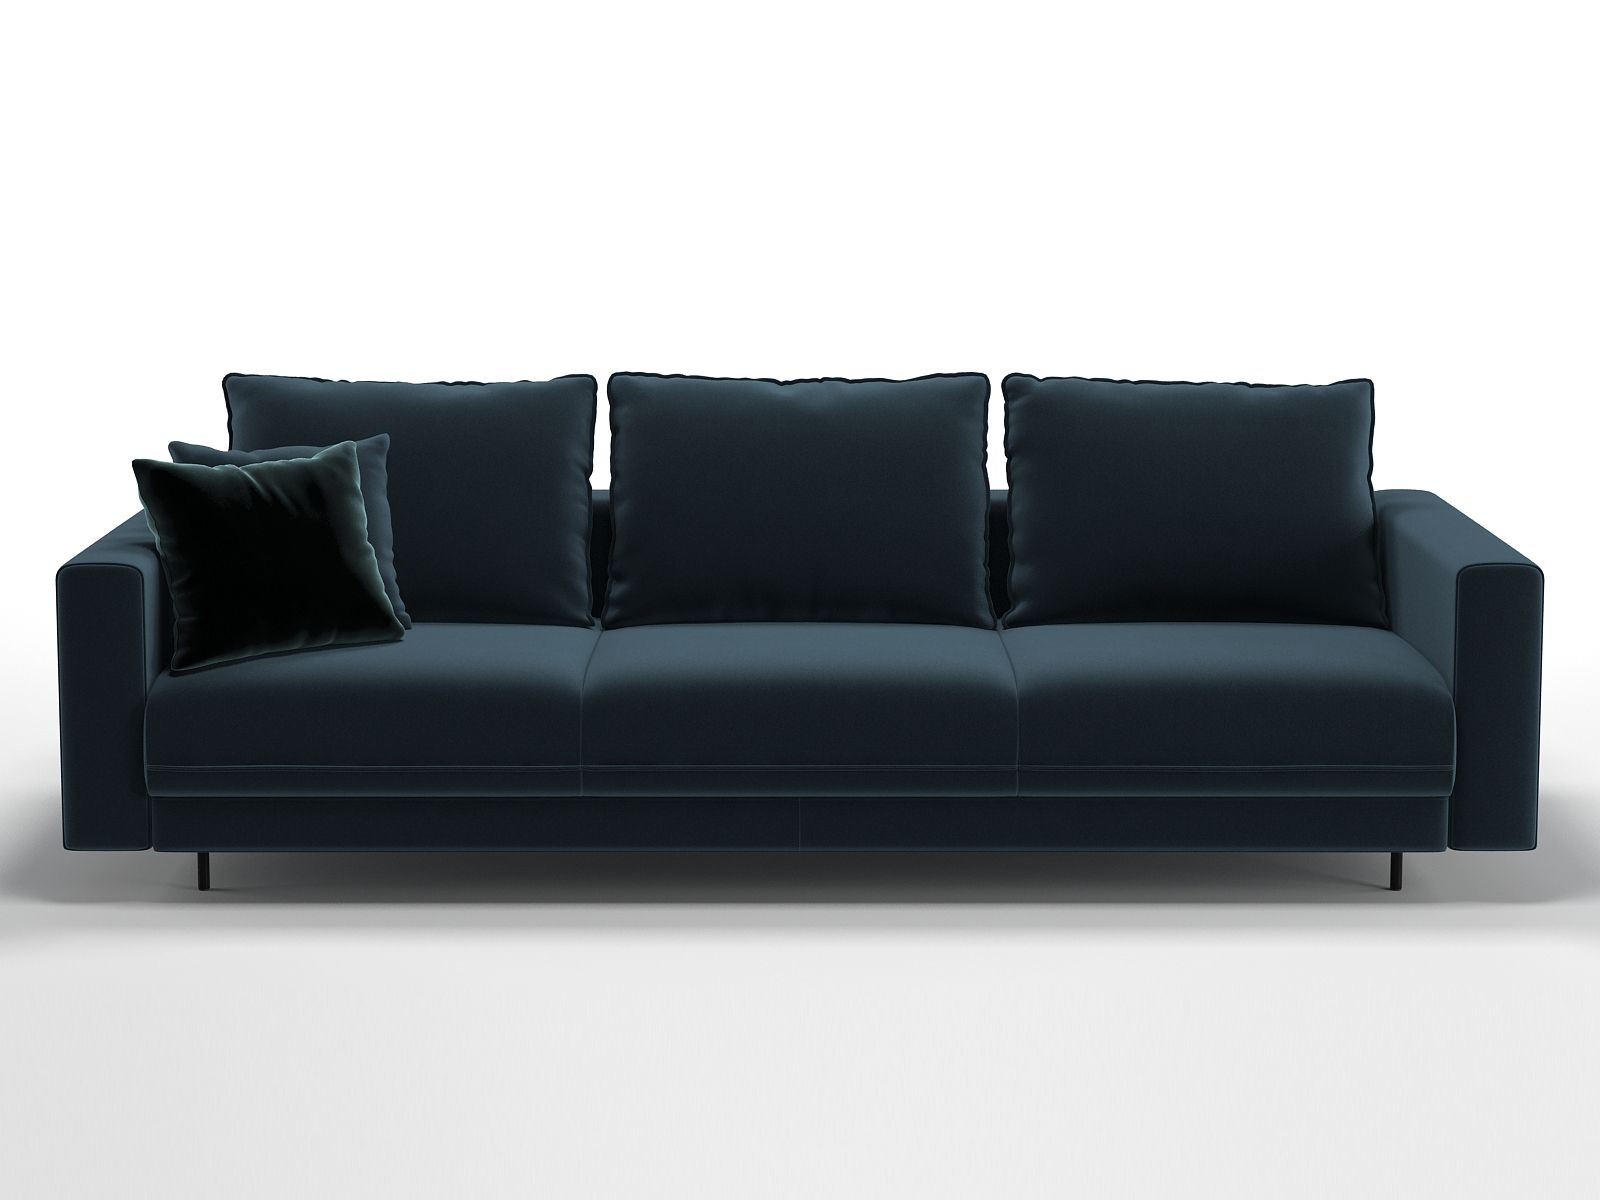 Enki 3 Seater Sofa 3d Model By Design Connected In 2020 Sofa 3